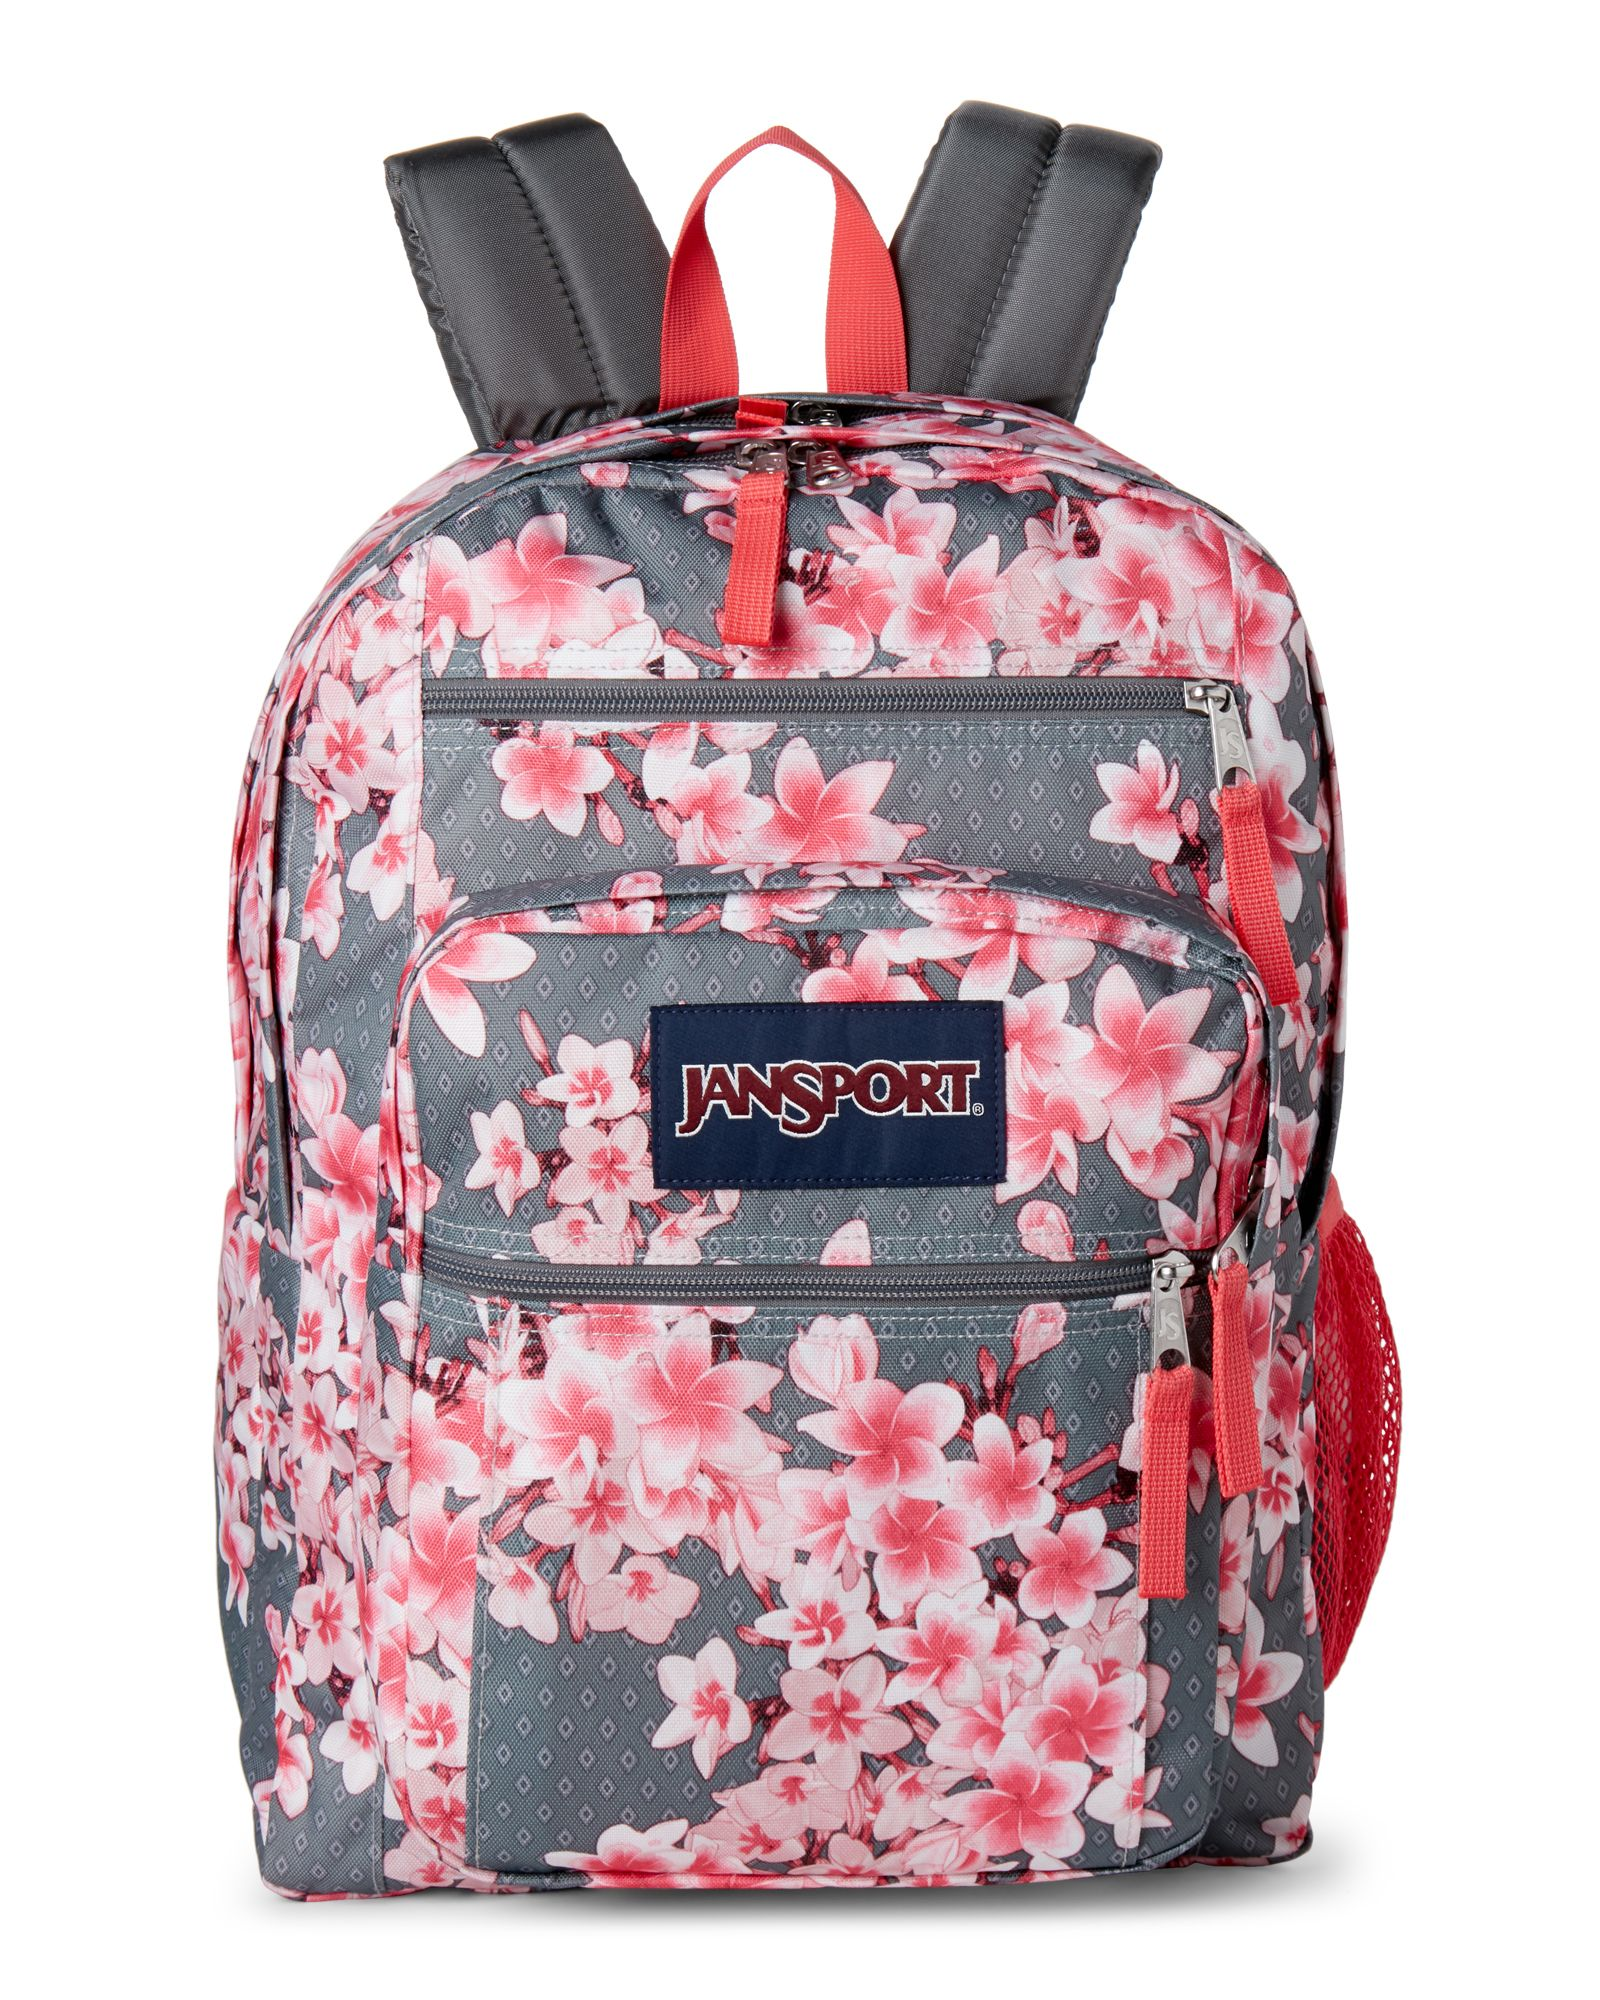 Pink Floral Big Student Backpack   *Luggage & Bags